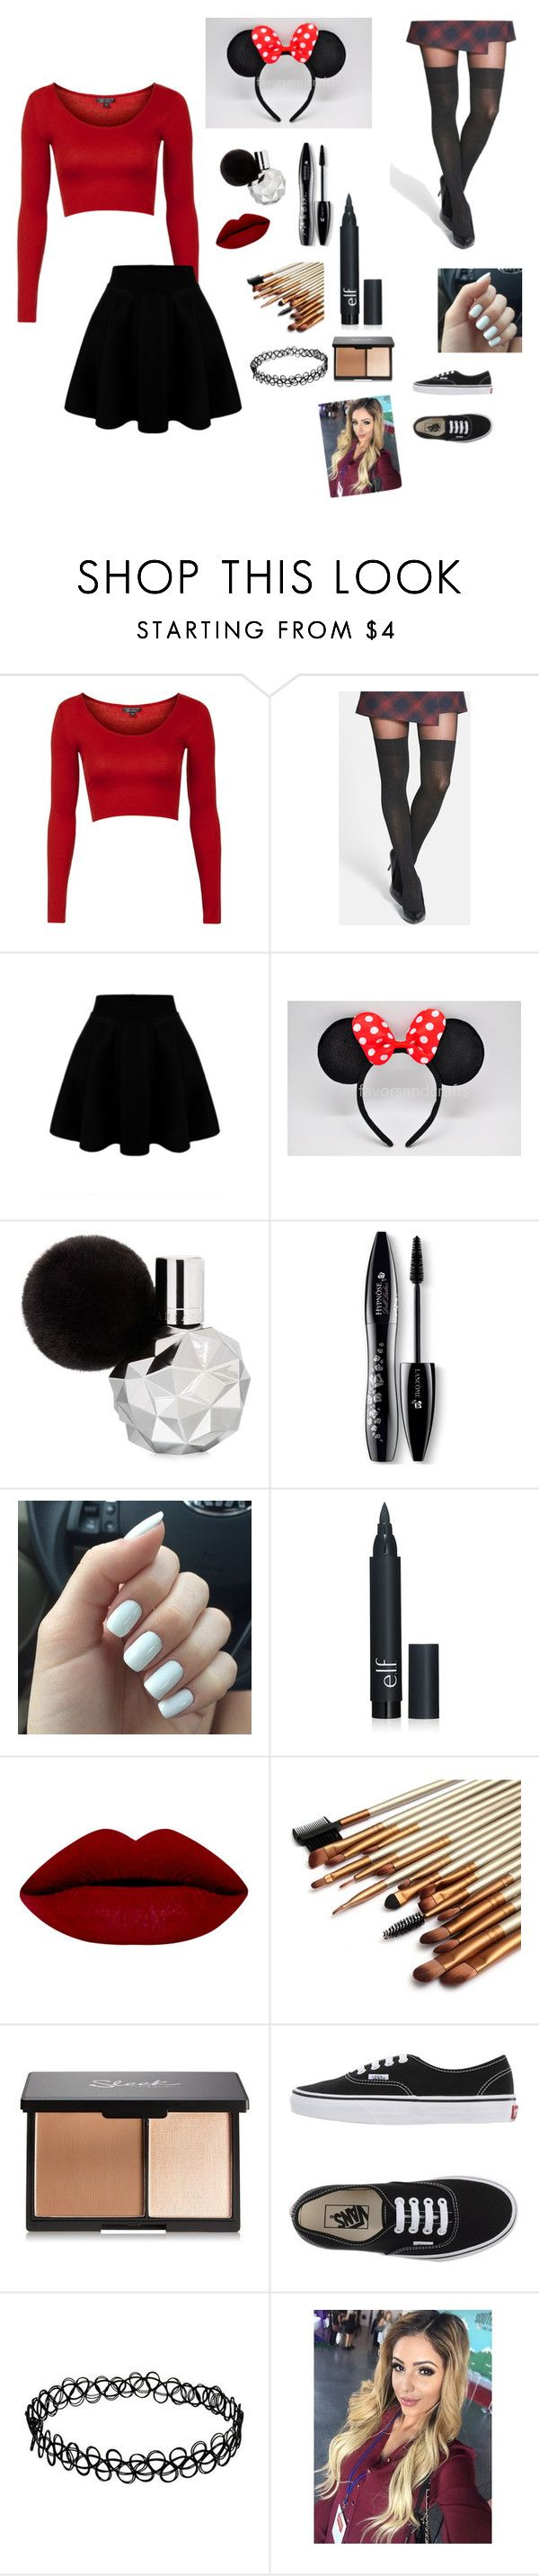 """""""Minnie Mouse costume"""" by zoella36 ❤ liked on Polyvore featuring Topshop, Pretty Polly, Lancôme and Vans"""